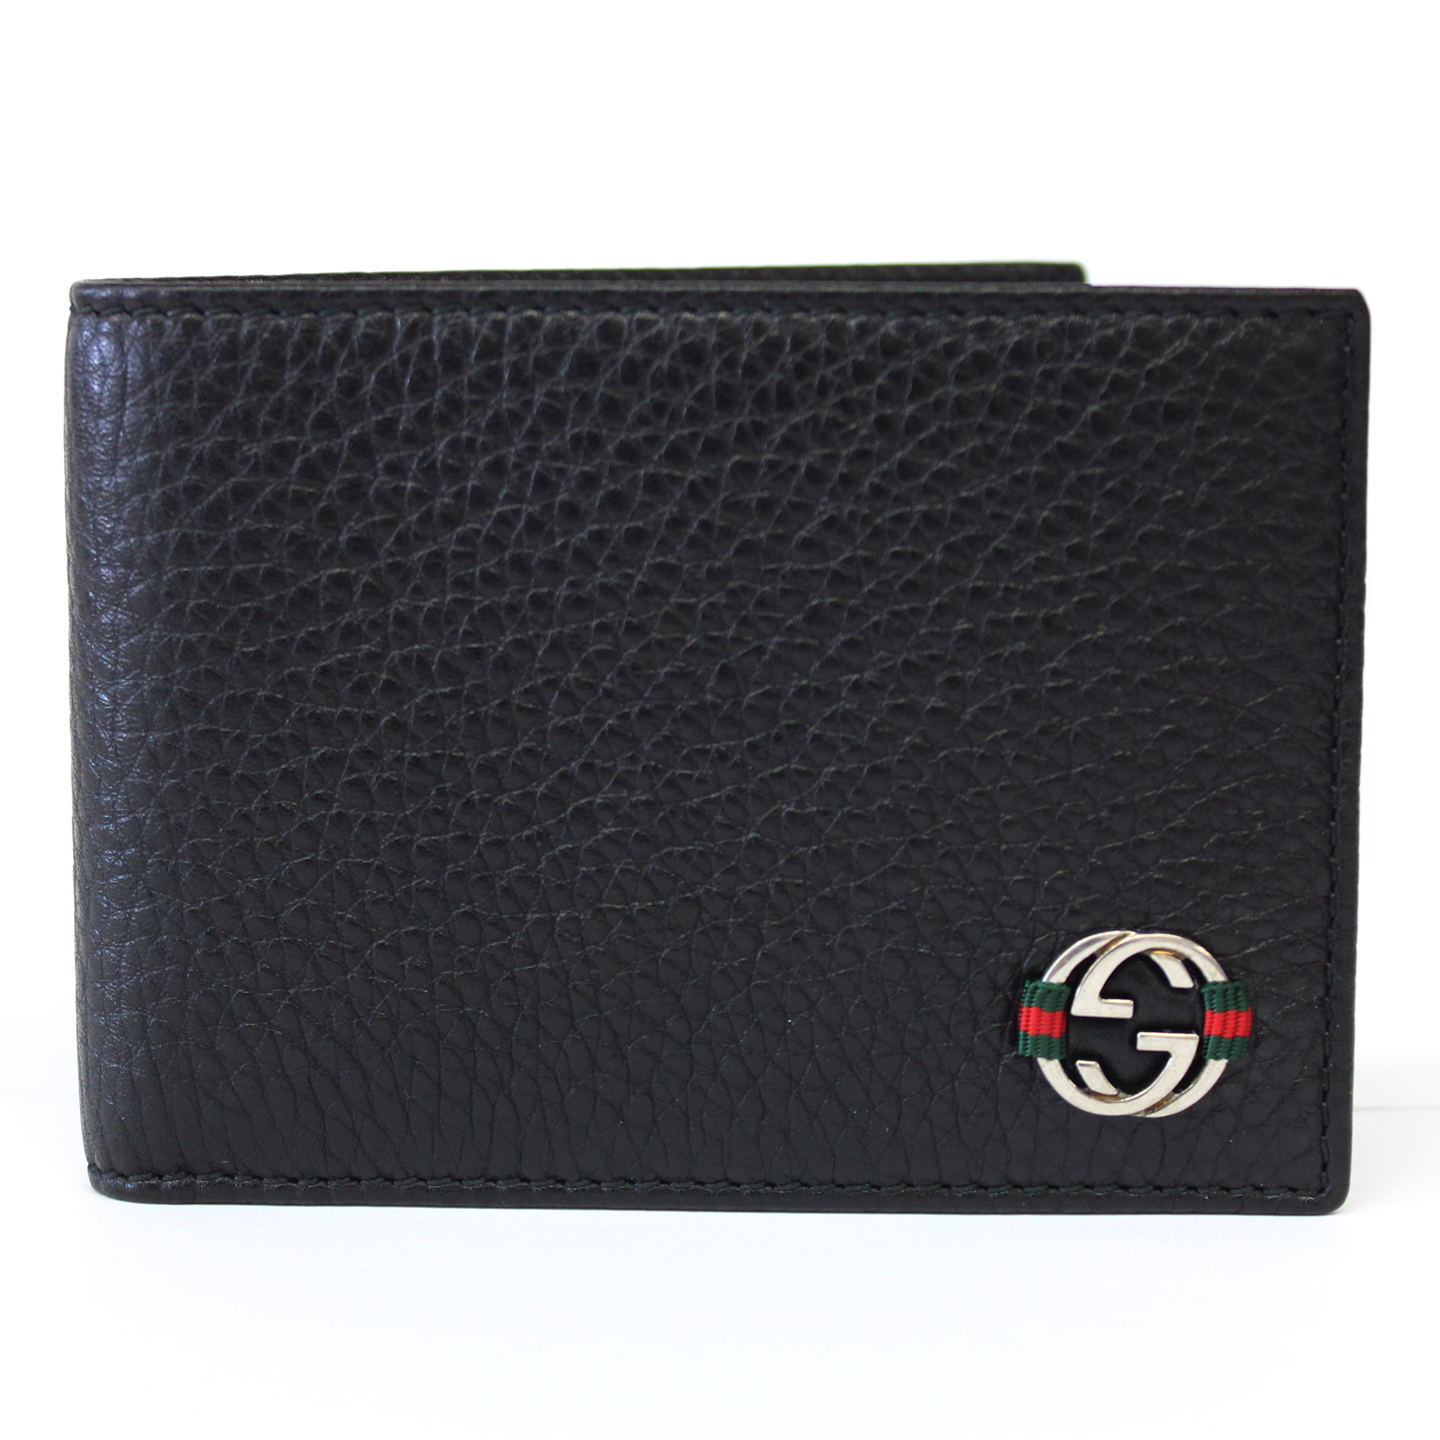 Gucci Black Leather Small Bi Fold Wallet Dreamlux Studio